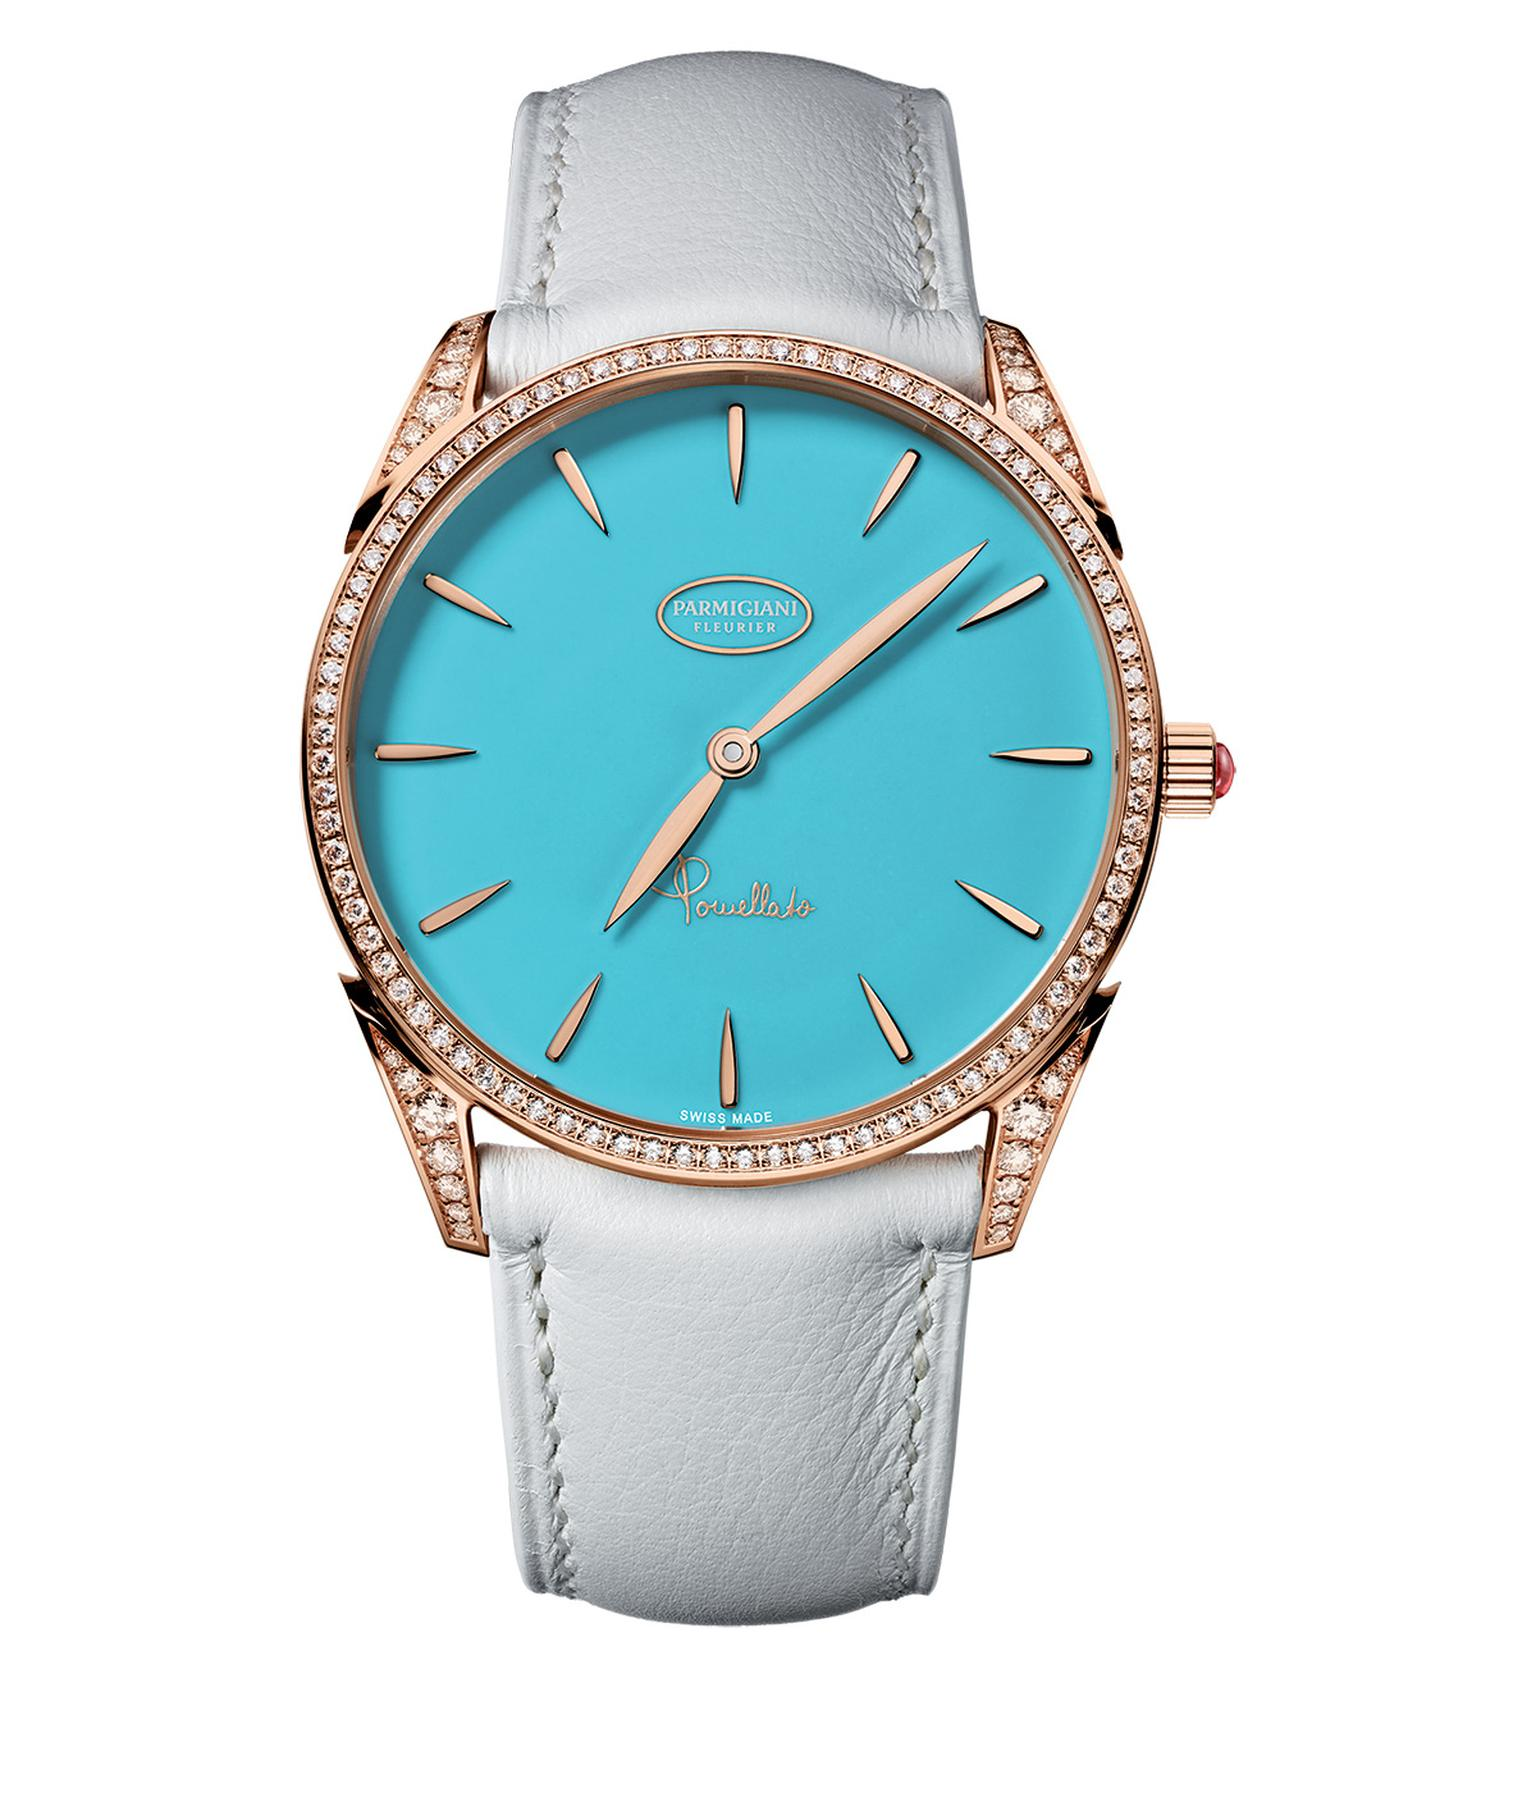 Tonda Pomellato Parmigiani Capri rose gold watch with turquoise and diamonds_20131212_Zoom